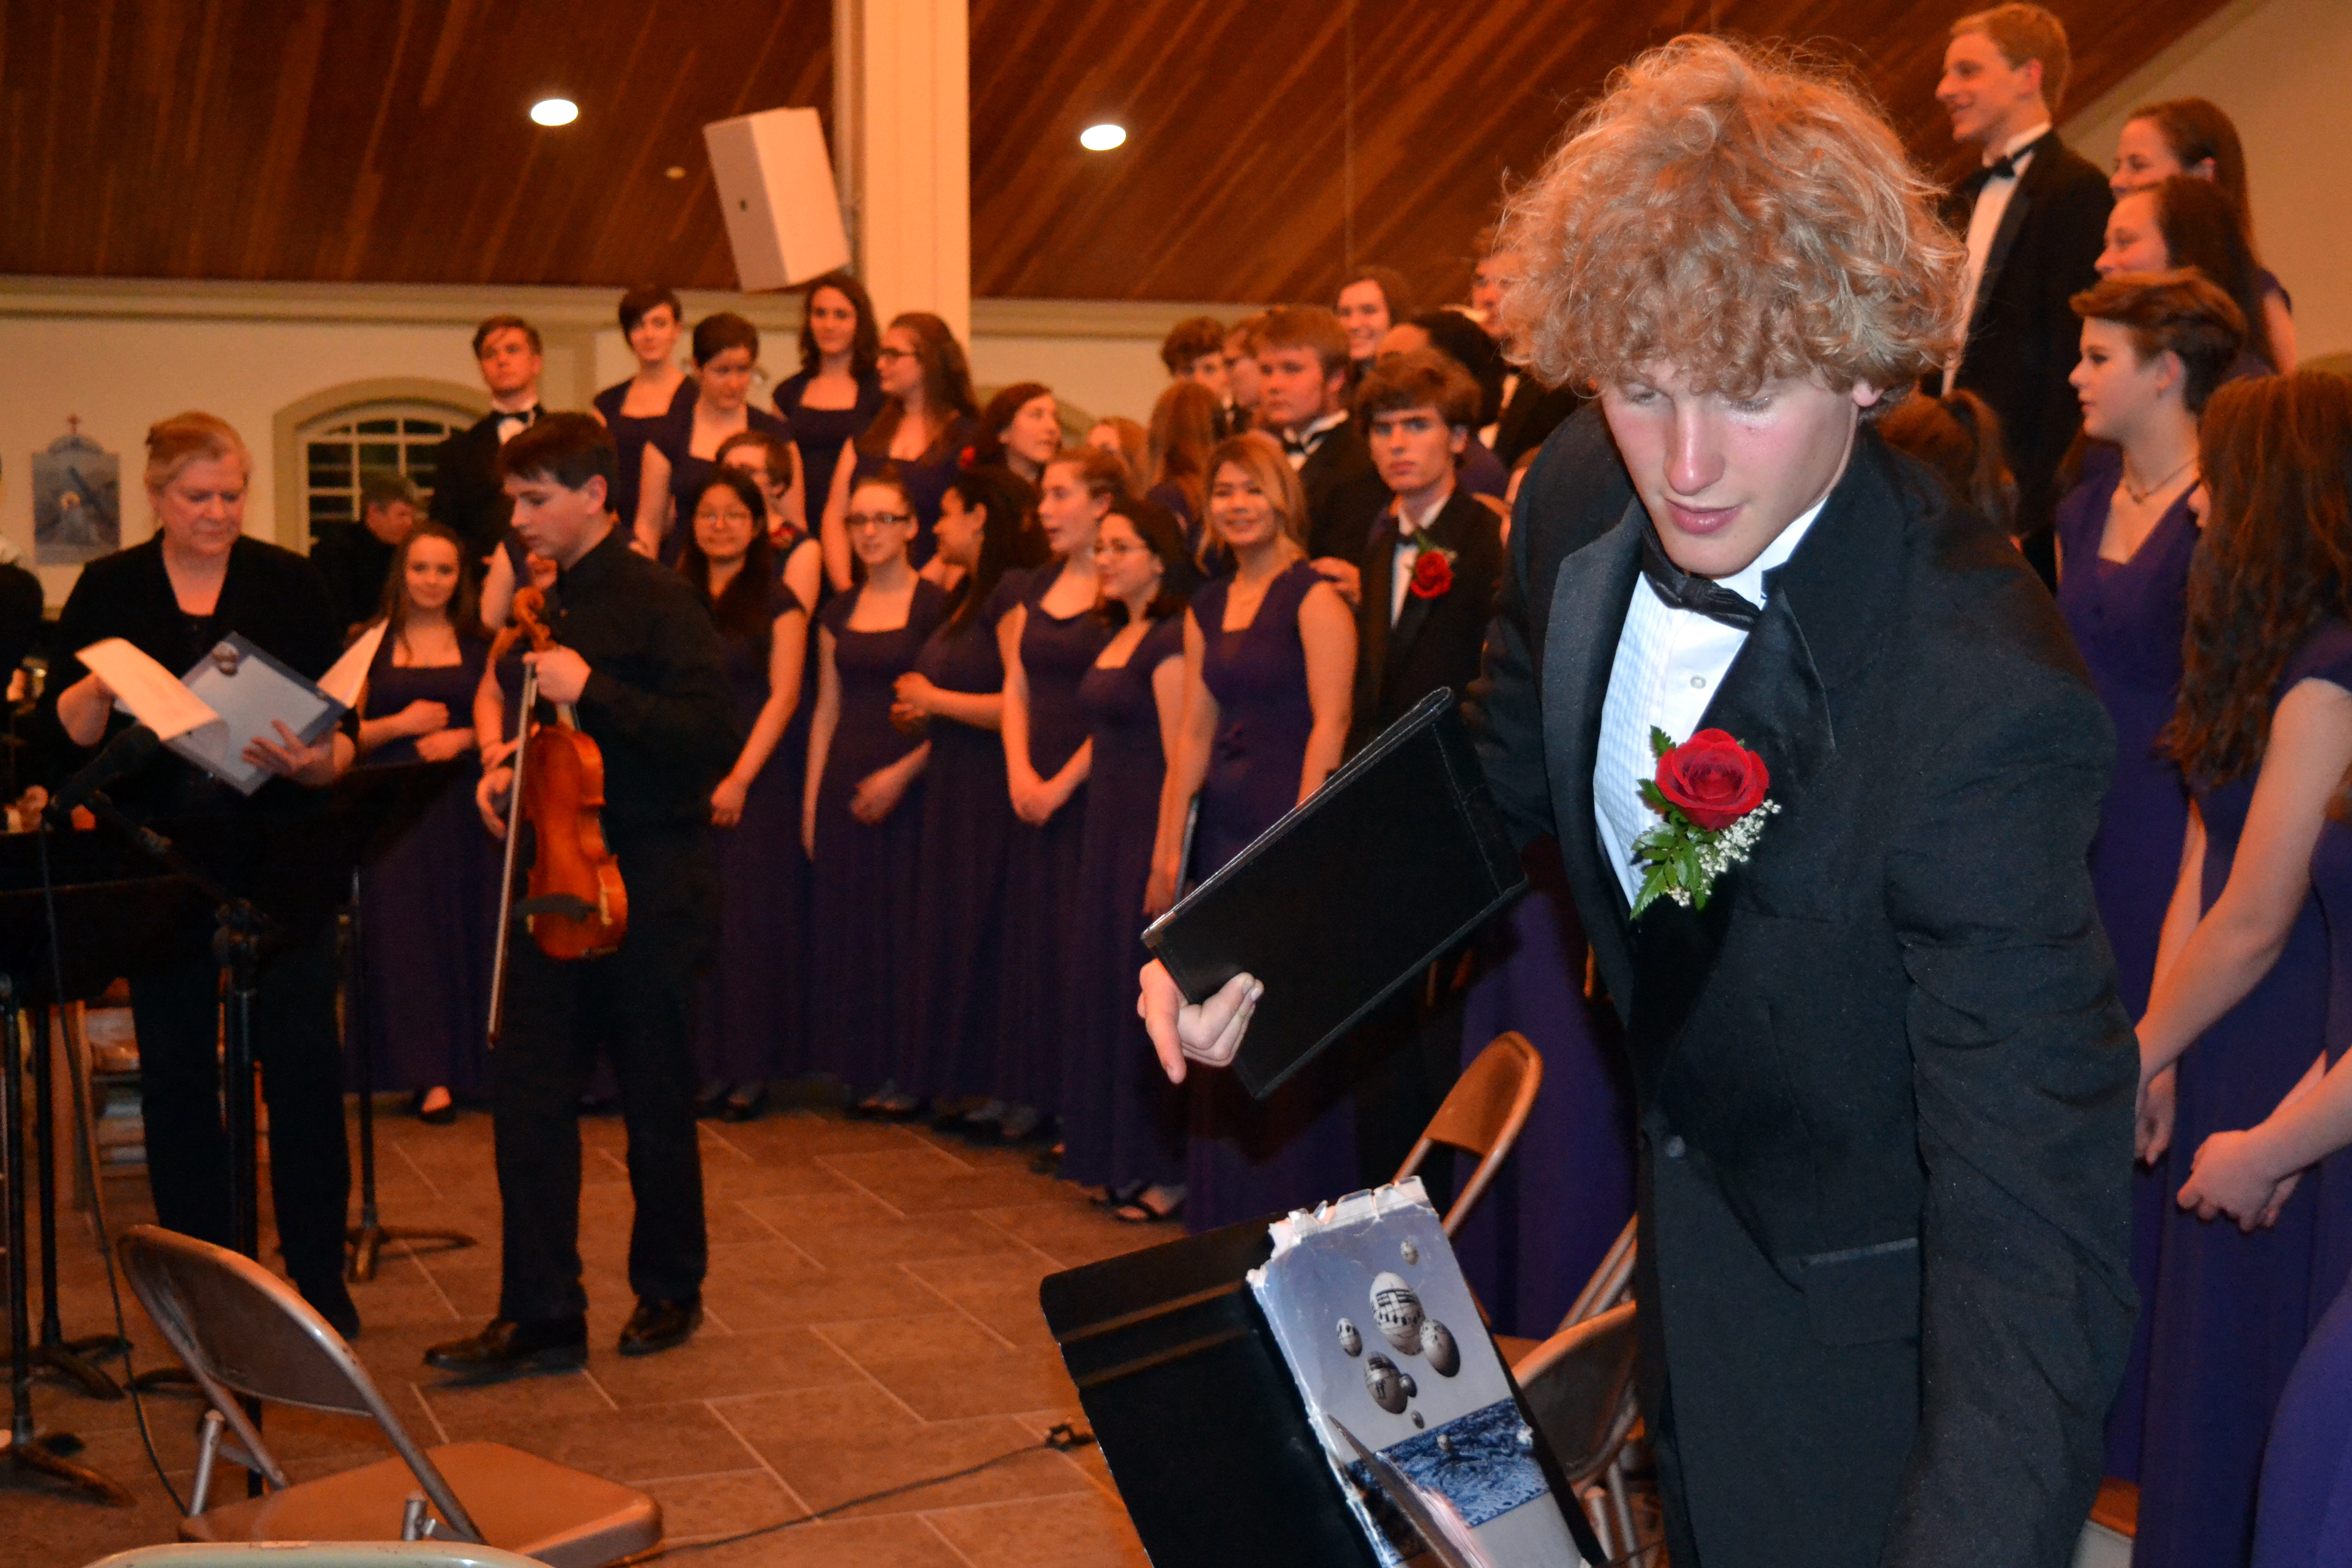 Lincoln Academy choir and string orchestra members, with orchestra director Carol Preston (left), get ready to pose for photographs at the end of the LA Spring Concert on Sunday, May 20. (Christine LaPado-Breglia photo)